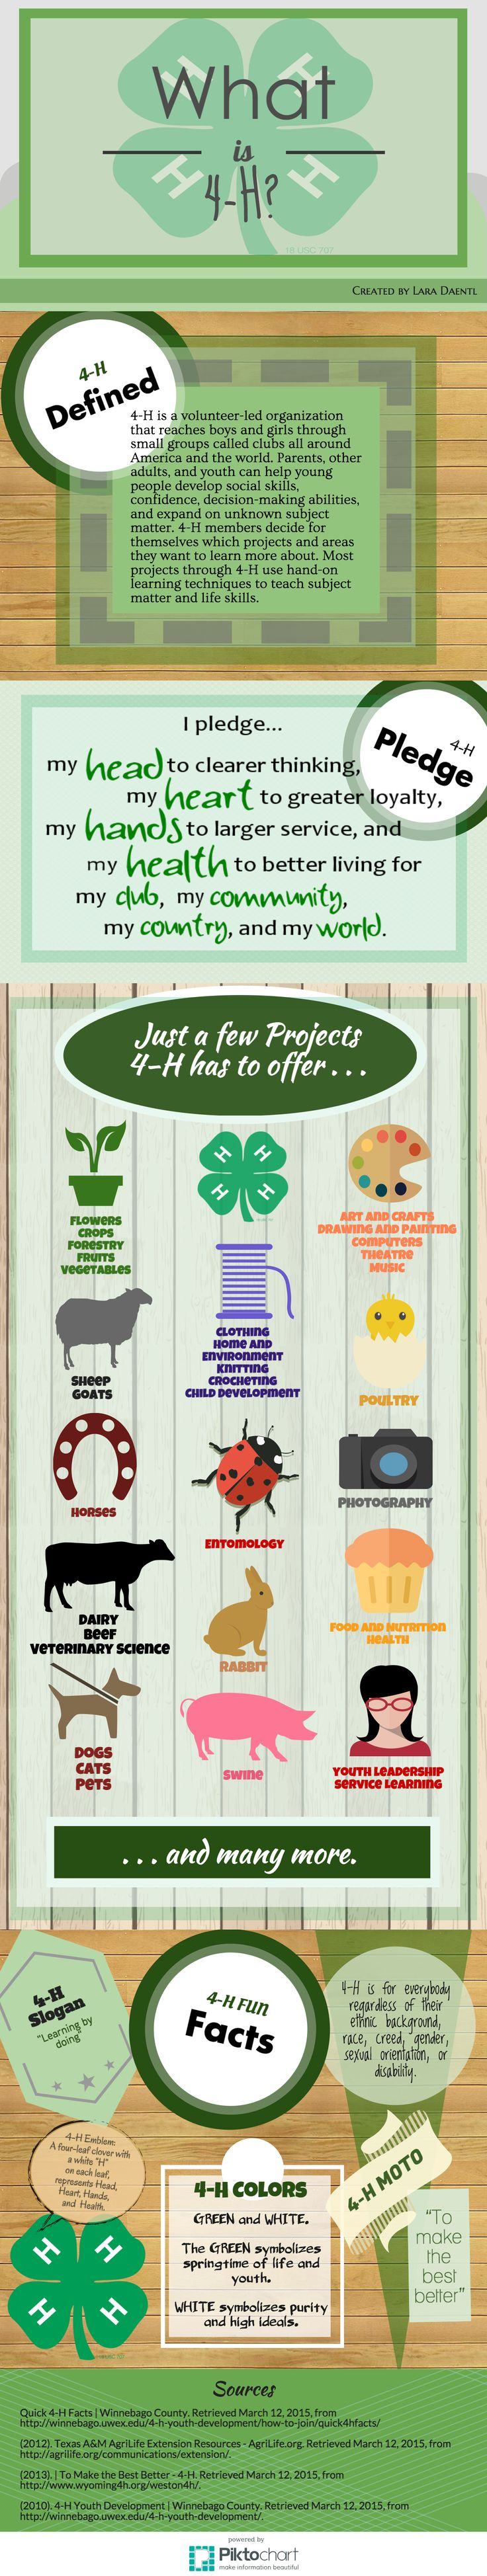 4 H Quotes 1000 Images About 4H On Pinterest